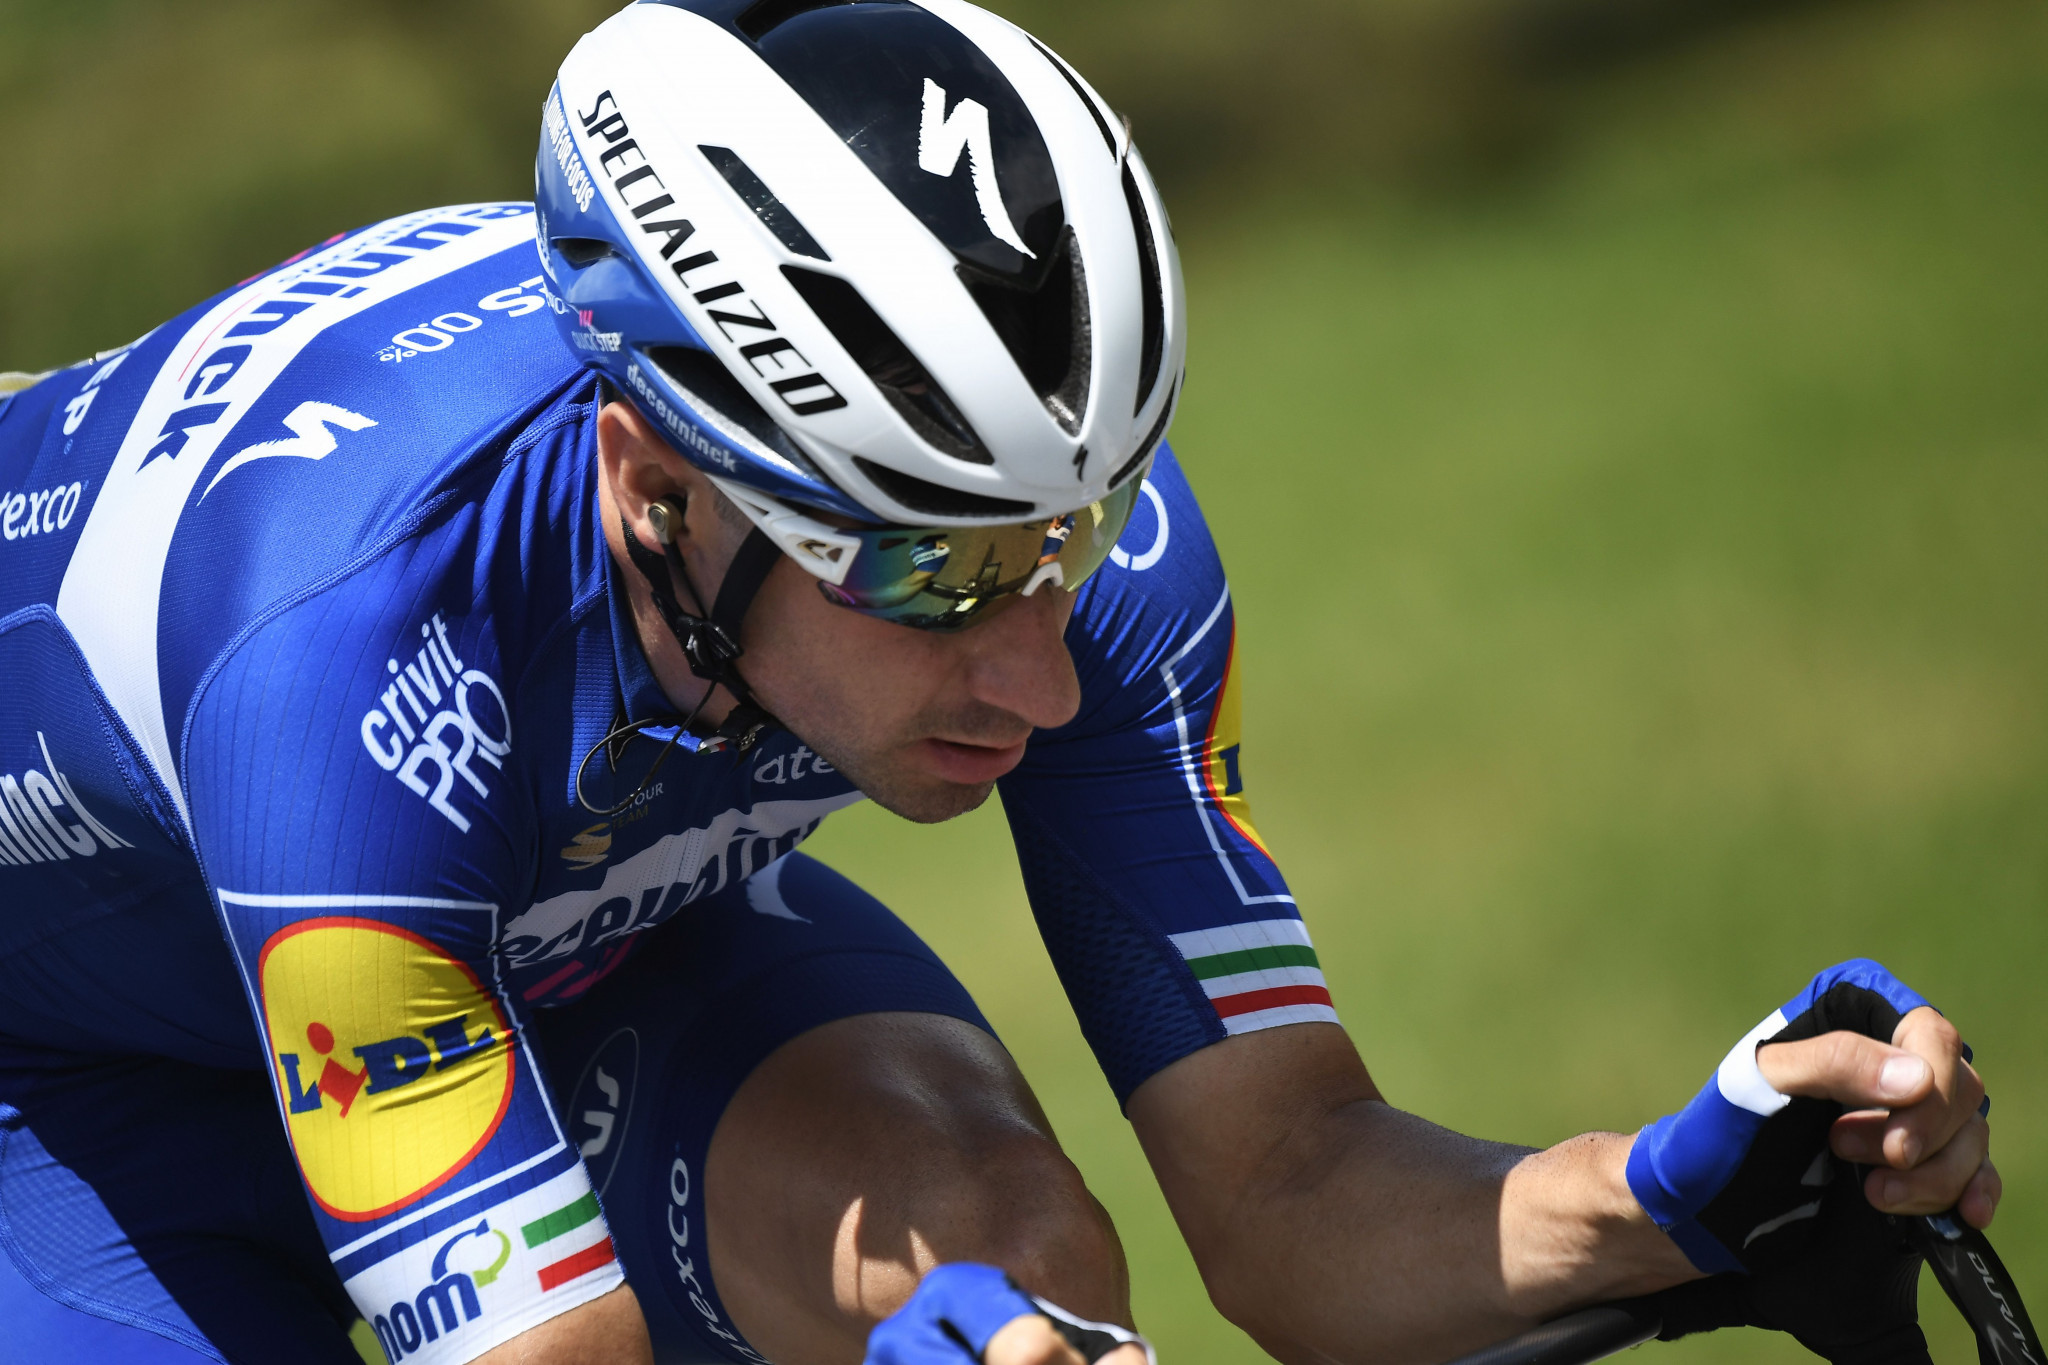 Olympic omnium champion Viviani wins European Championships men's road race